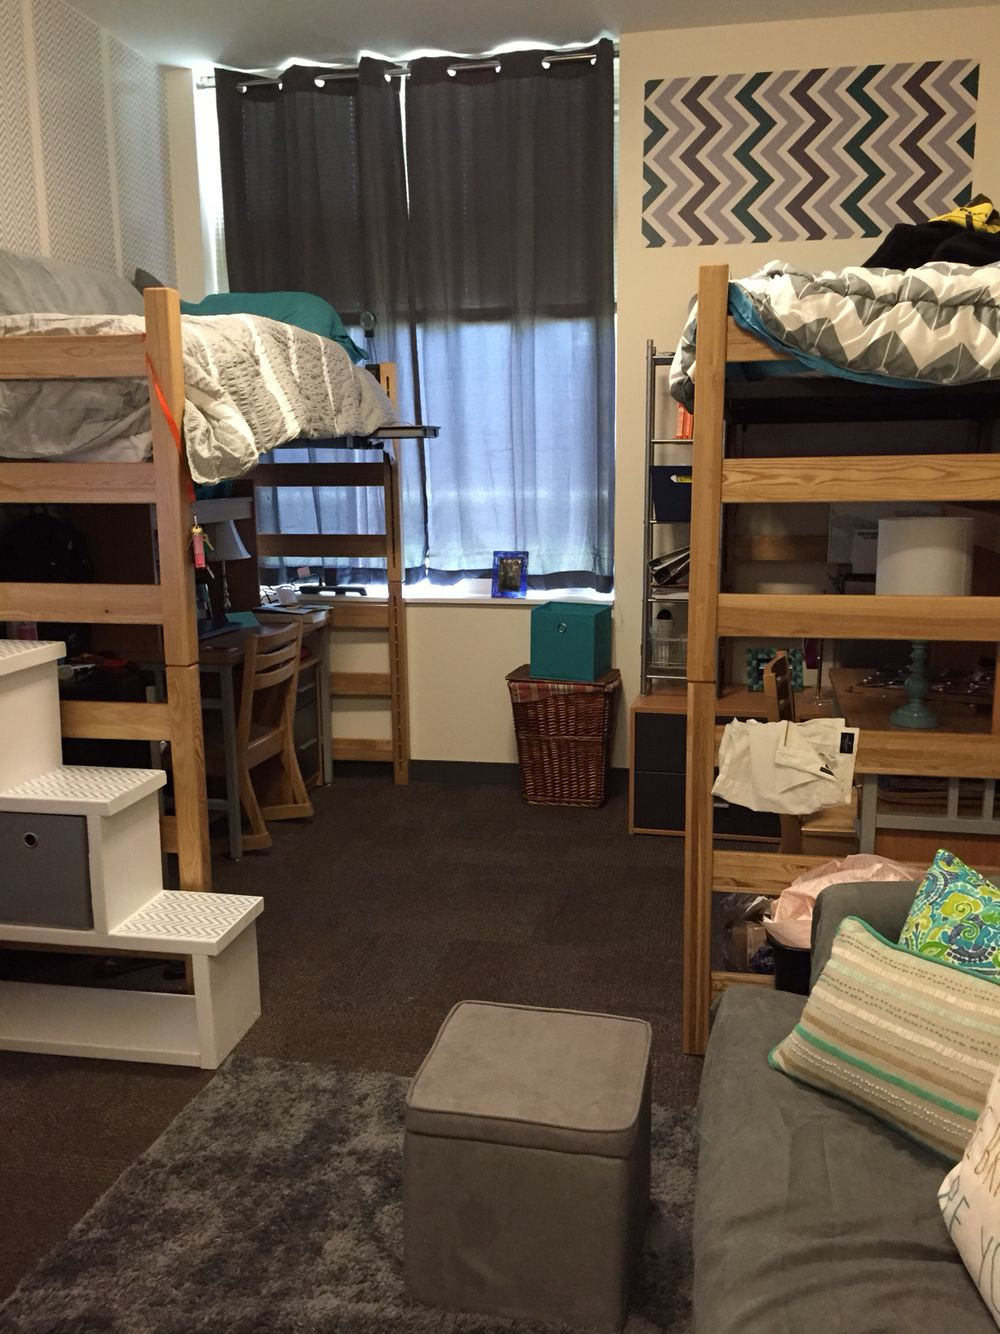 Dorm Room Layouts: Dorm Design, Dorm Layout, Dorm Room